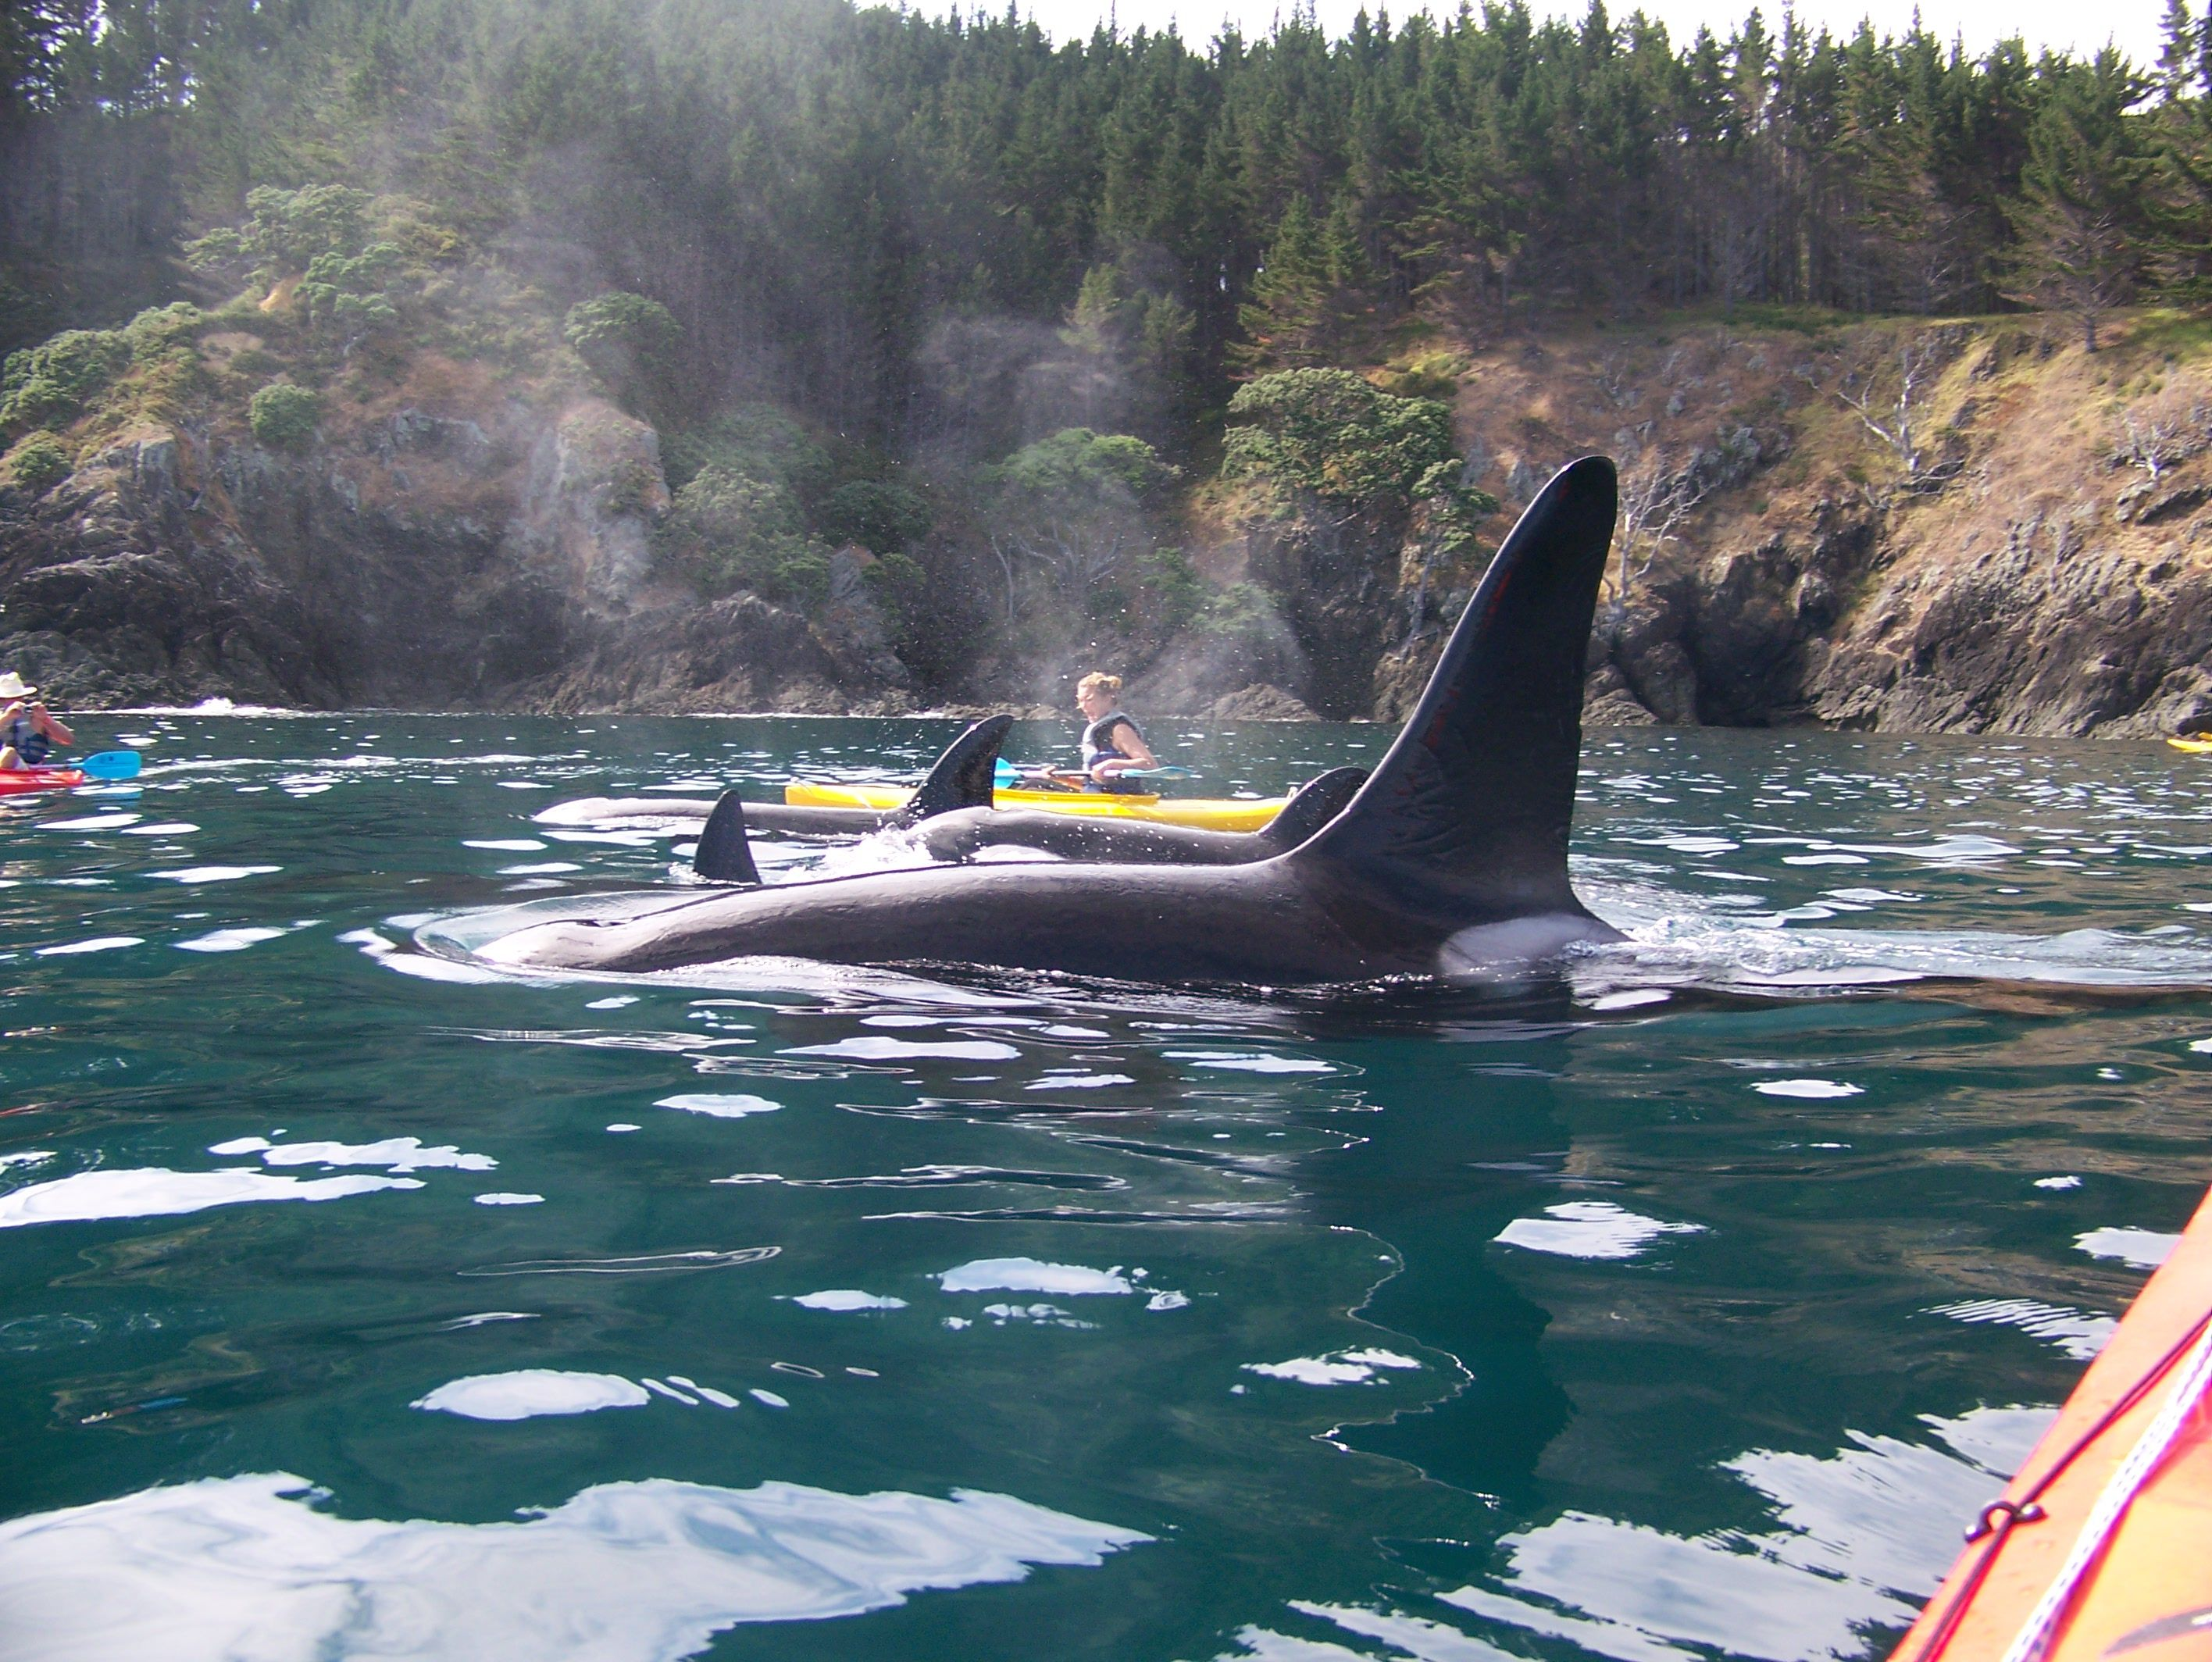 With Orca Great For Personal Development Perfectlifesecrets Kayaking Sea Kayaking Orca